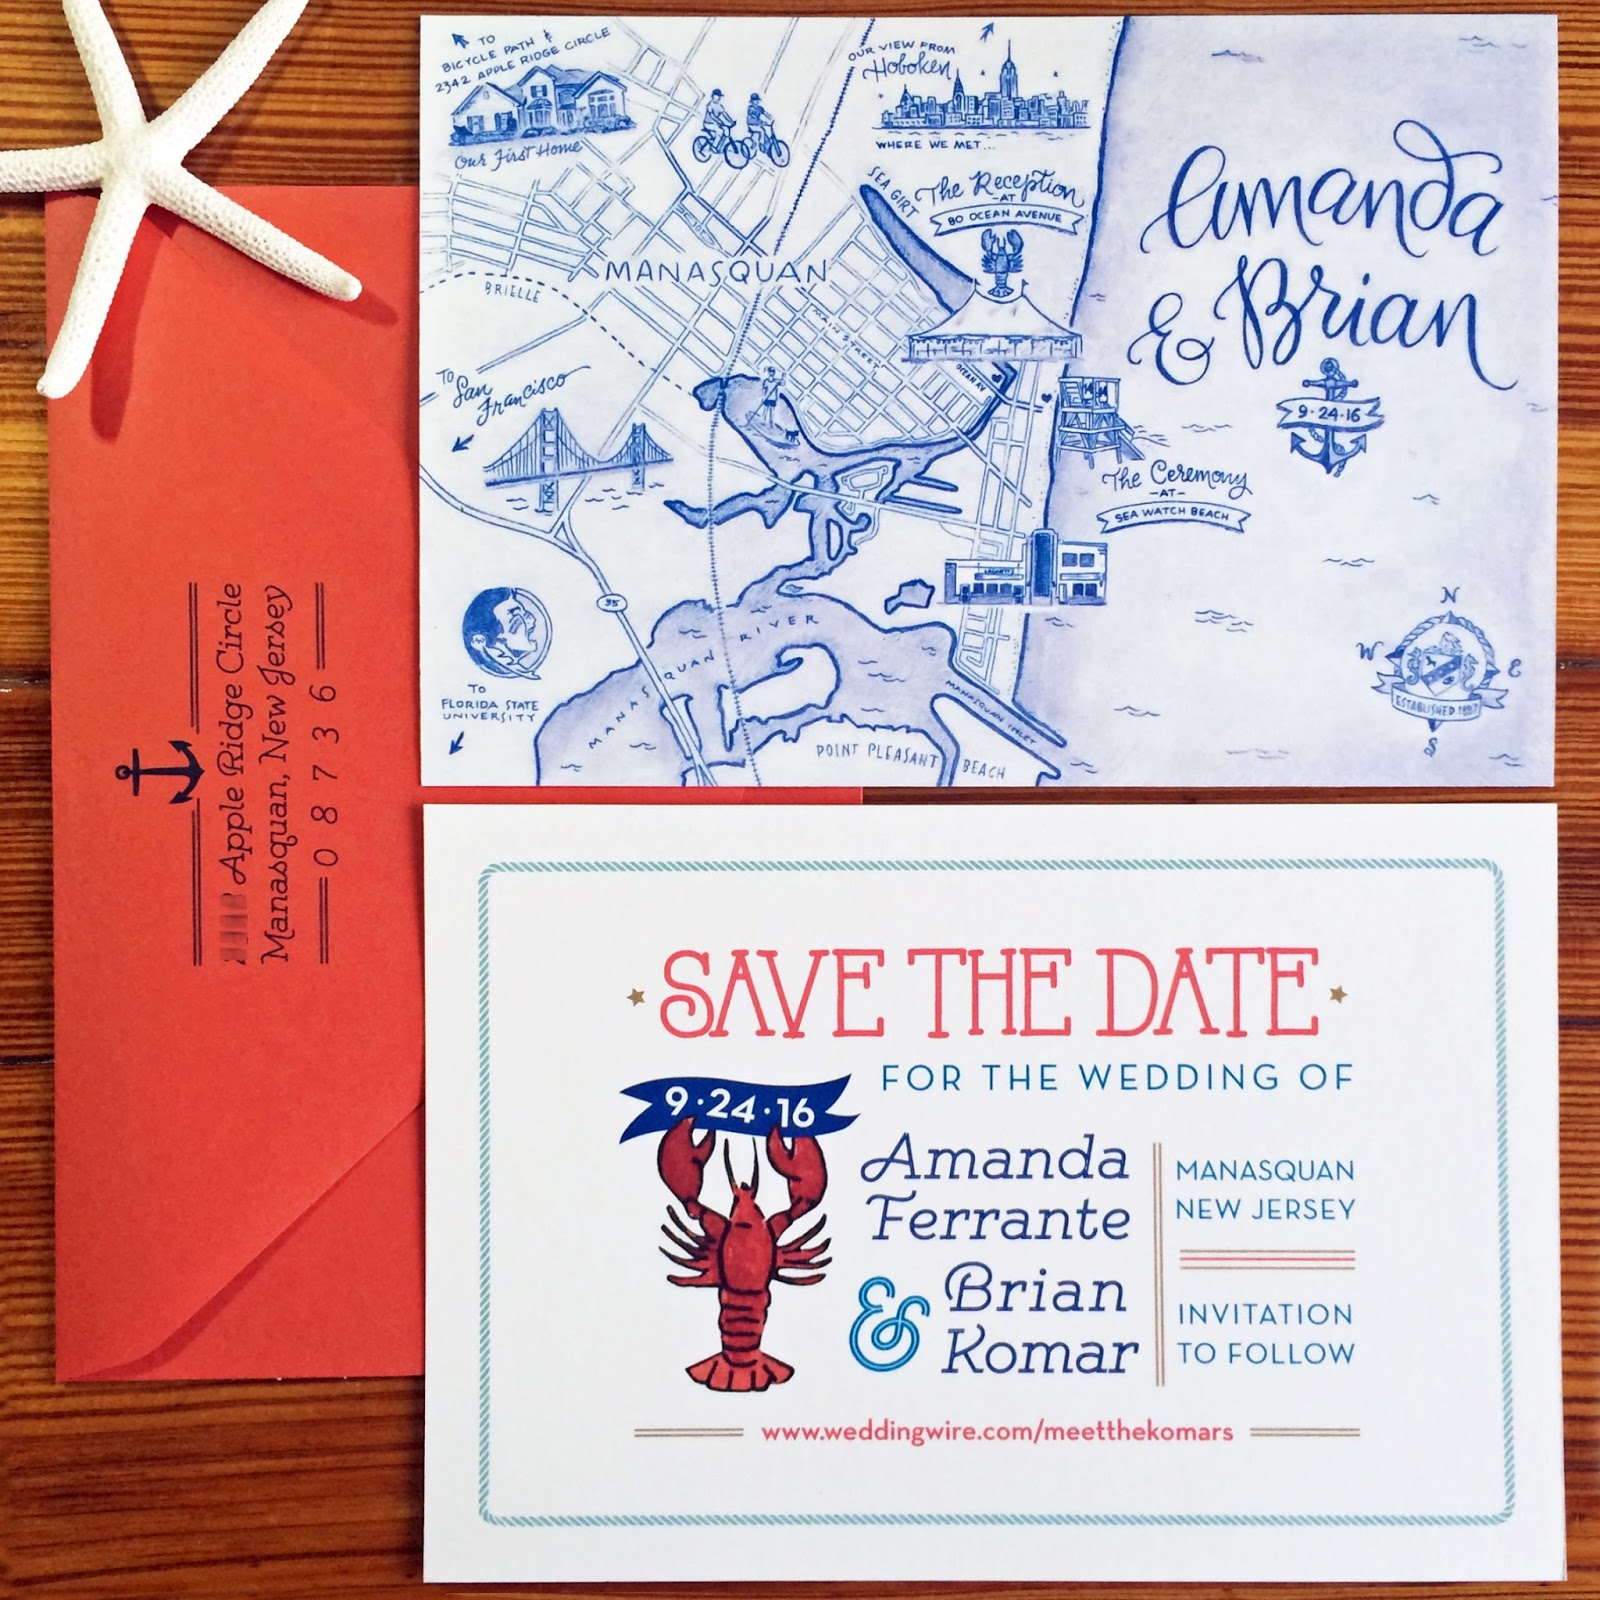 Invitations, Ink, Social Design Studio: February 2016